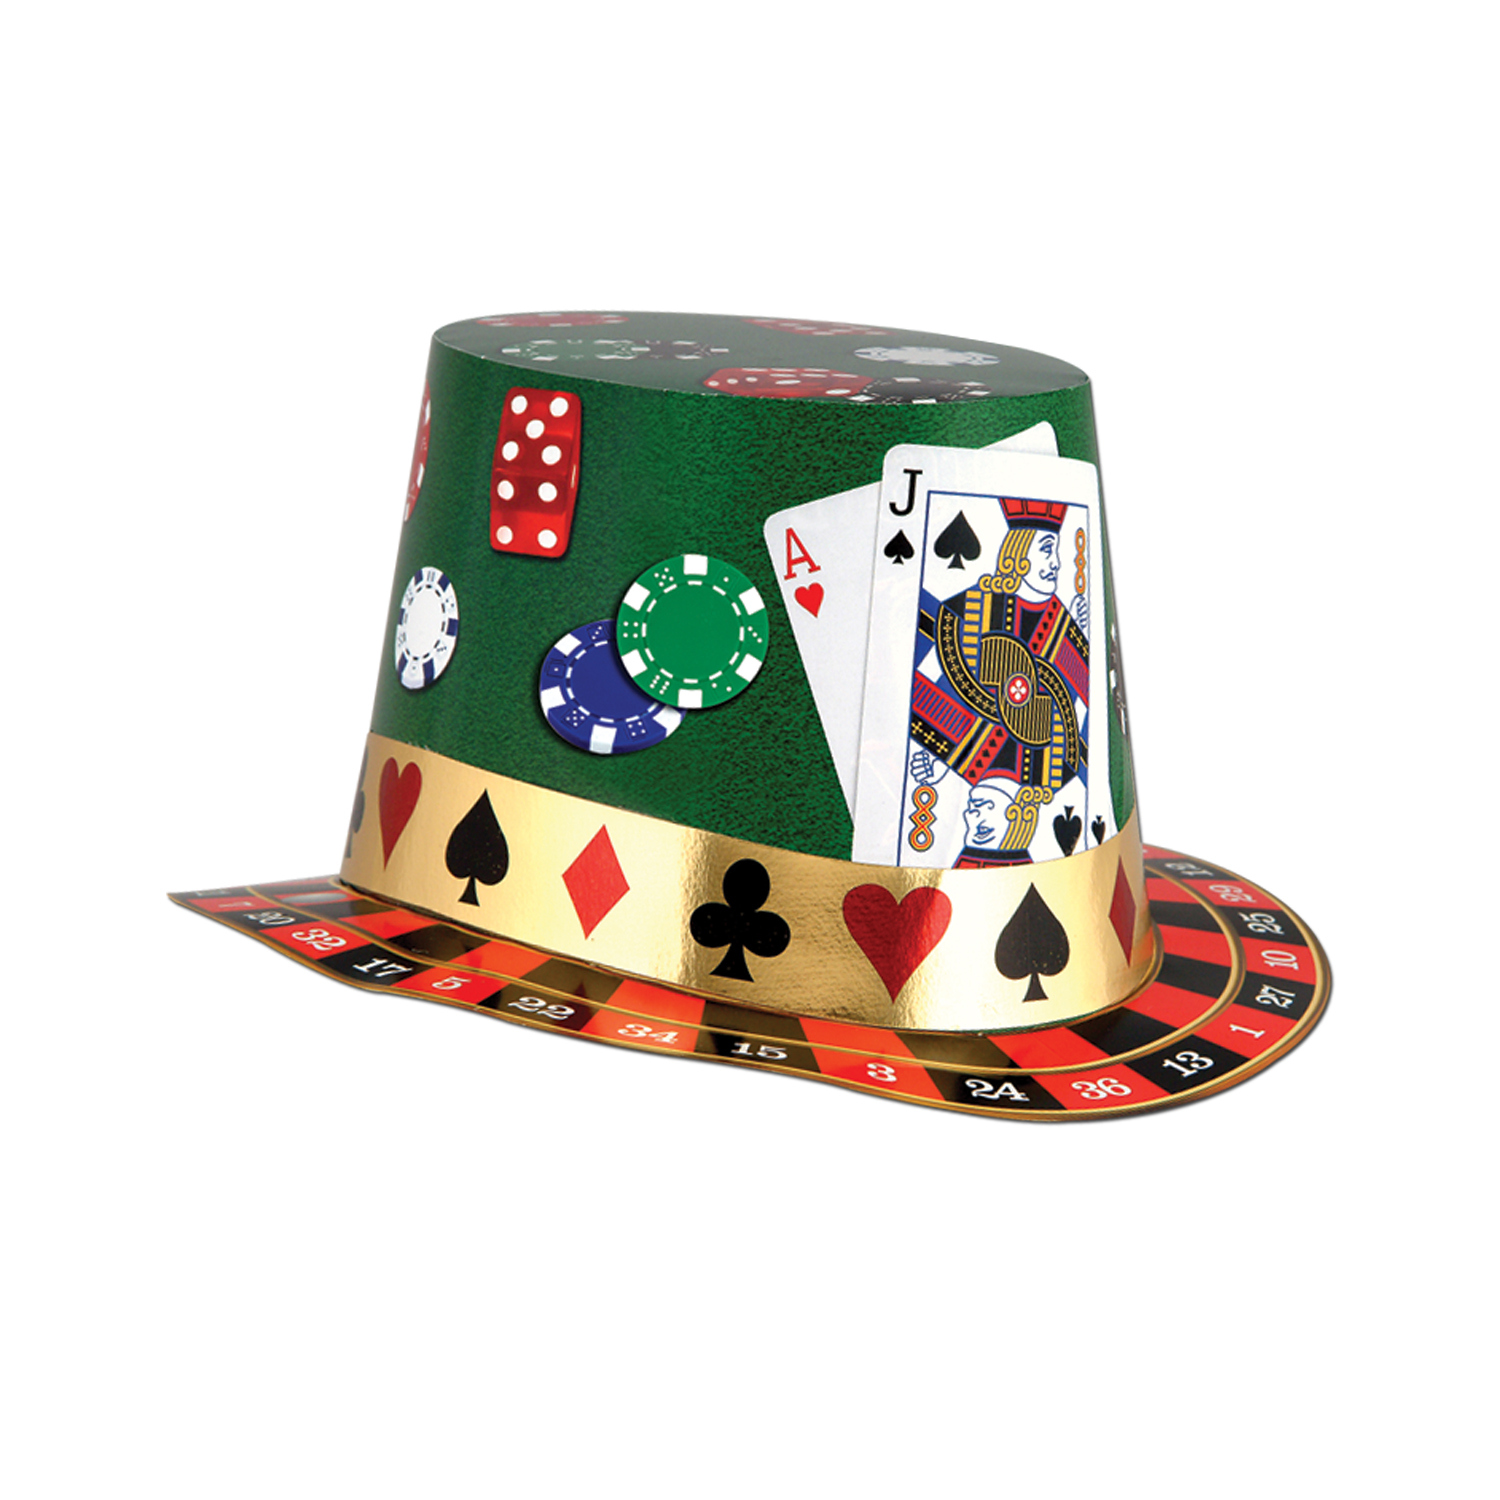 Casino Night Hi-Hat (Pack of 25) casino, night, hi-hat, hat, top, poker, gambling, table, dice, cards, chips, Las Vegas, party, night, event, accessory